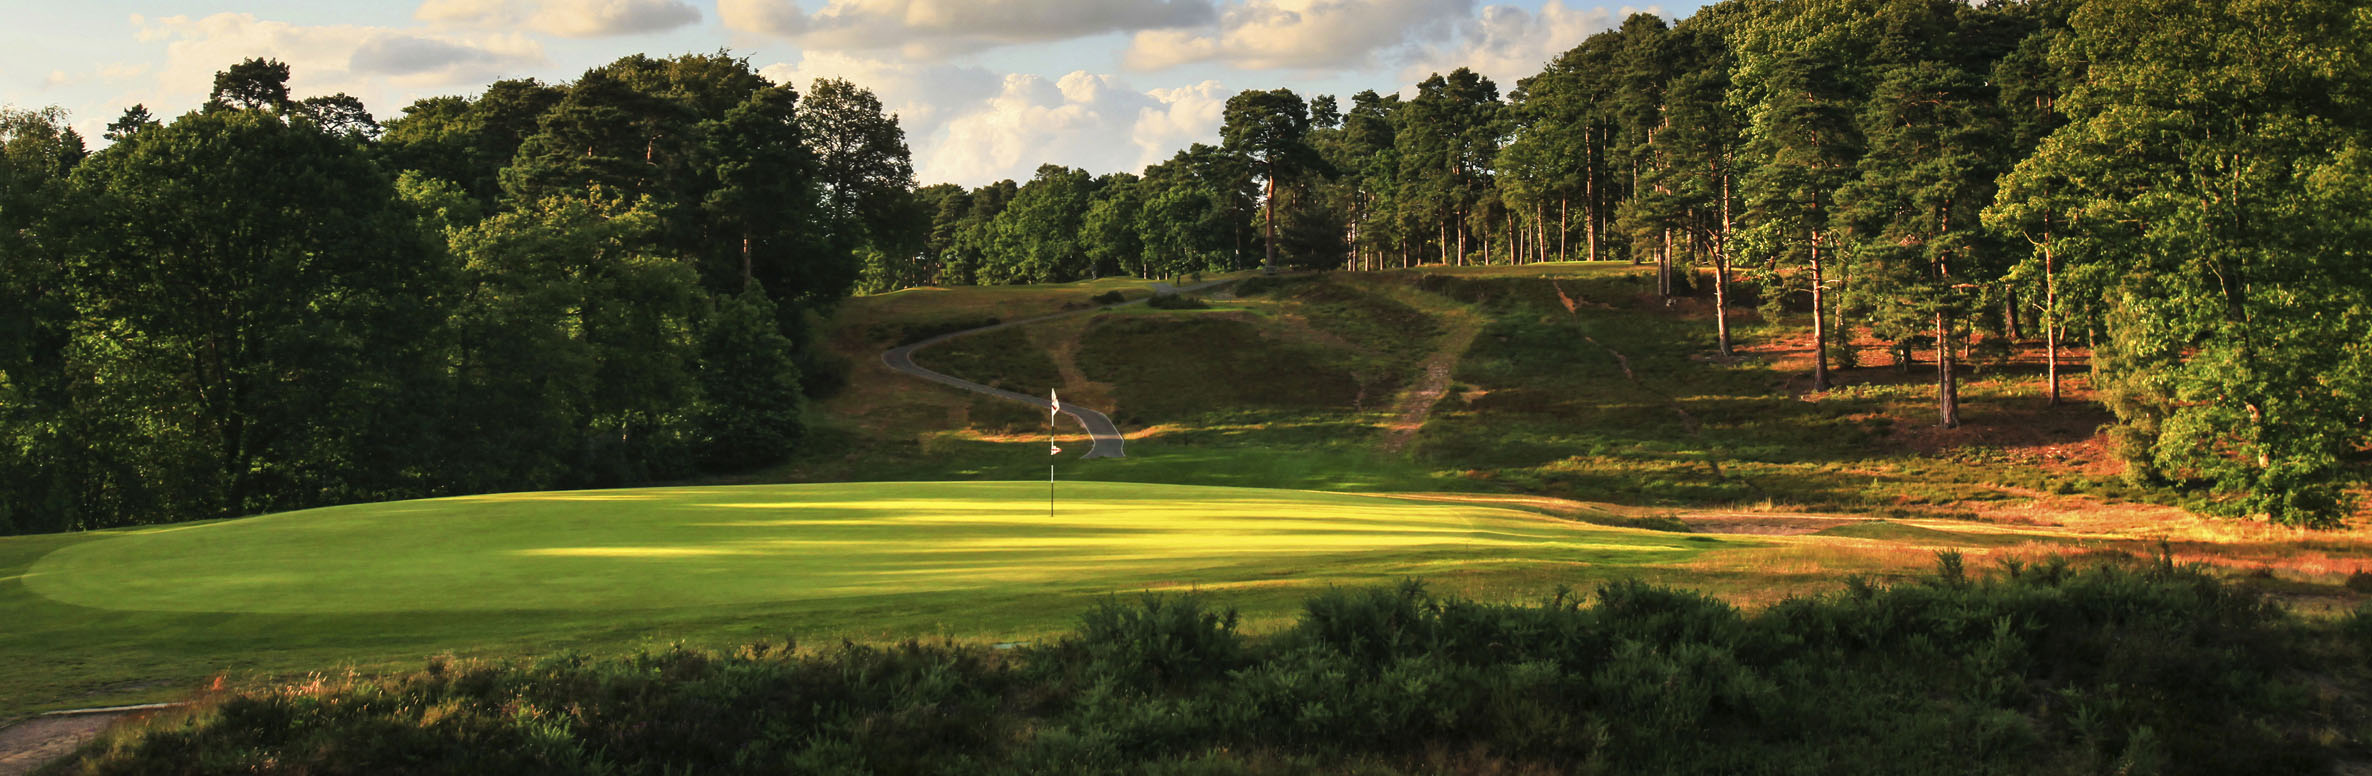 Golf Course Image - St Georges Hill Golf Club No. 8